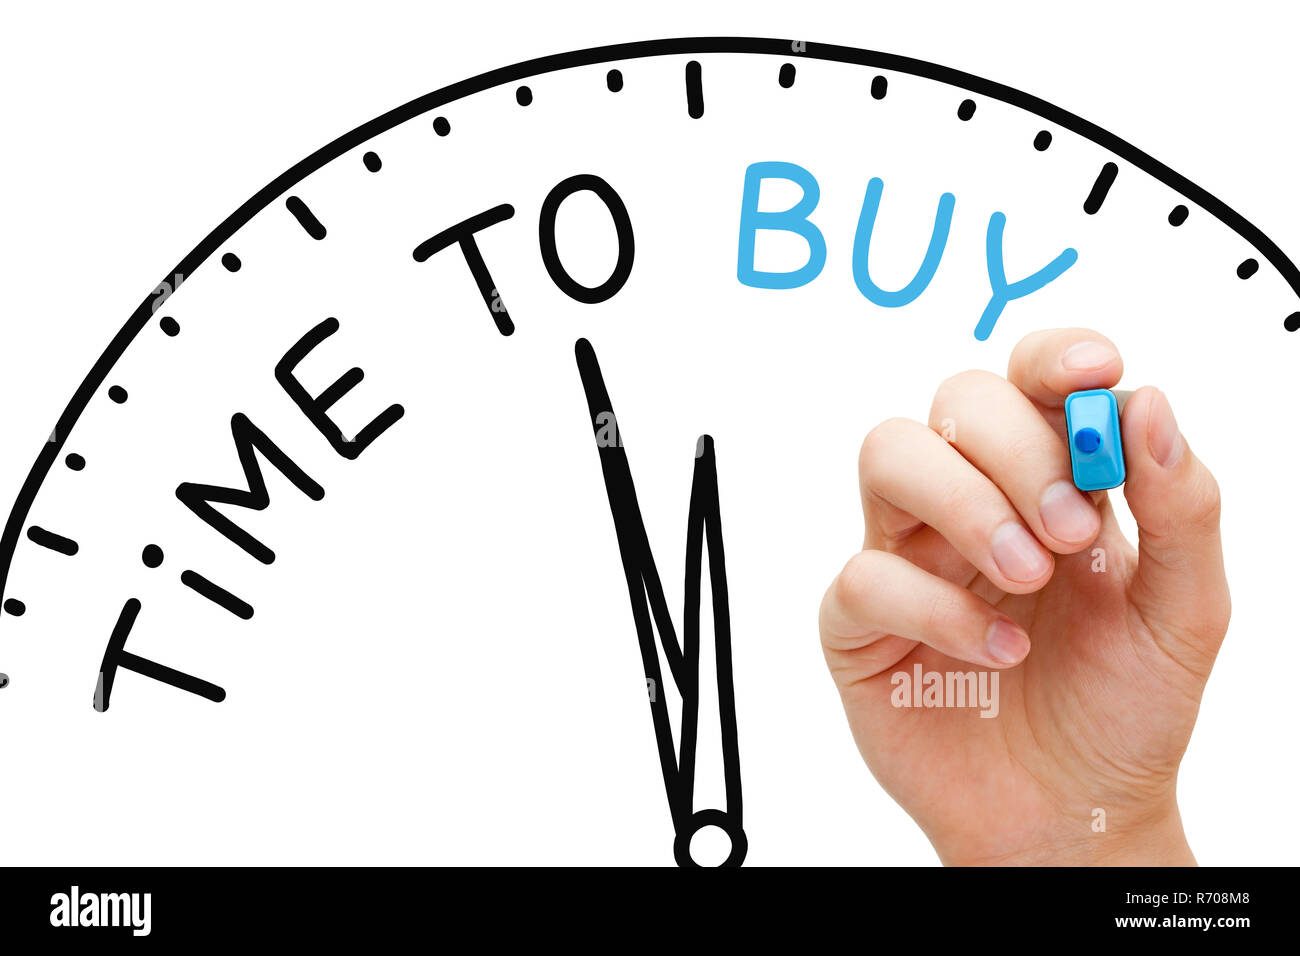 Time To Buy Clock Concept - Stock Image